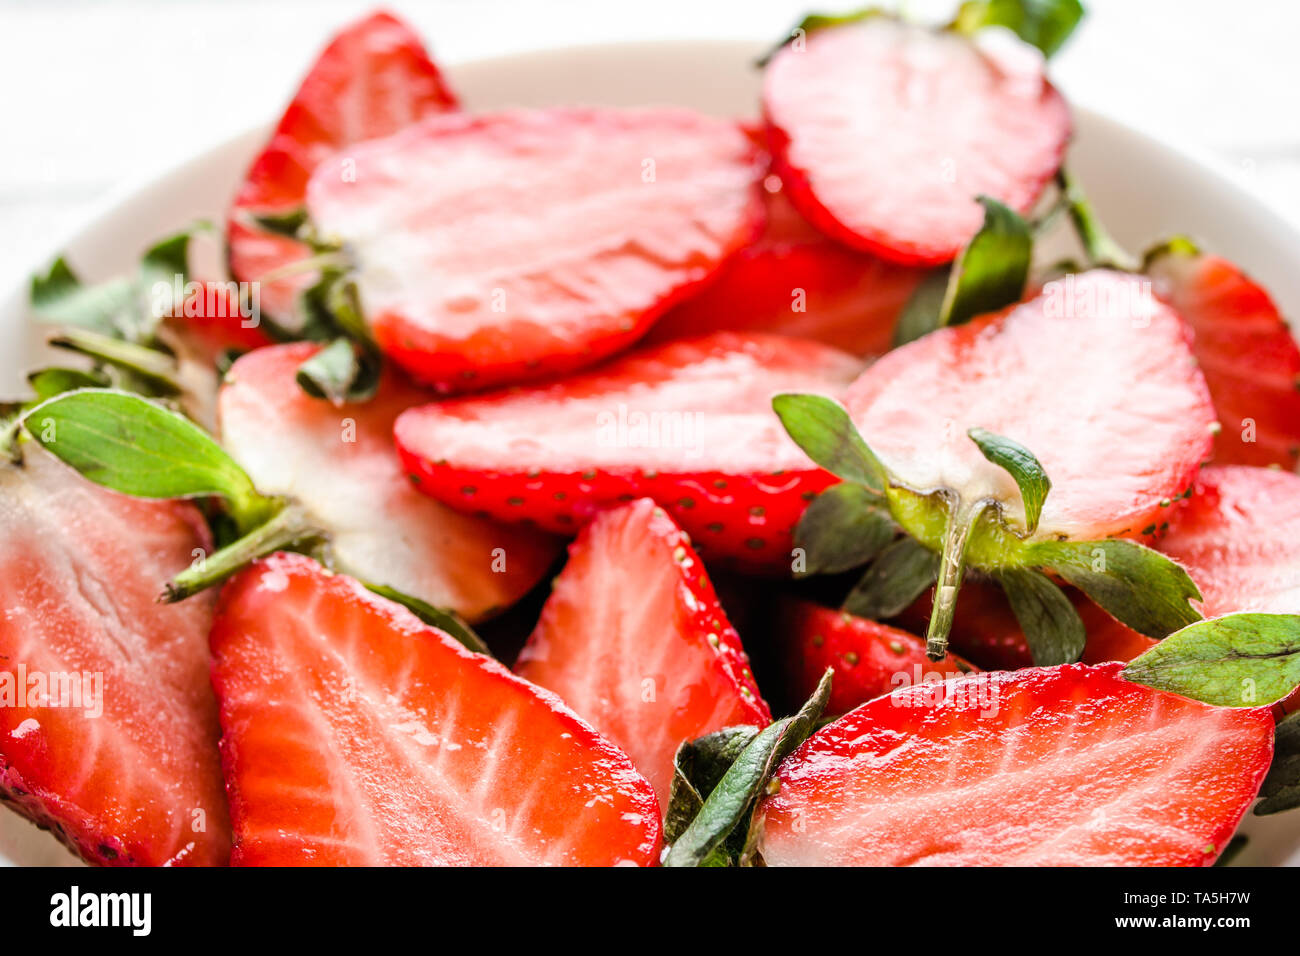 Fresh strawberries. Plate with juicy strawberry slices. - Stock Image